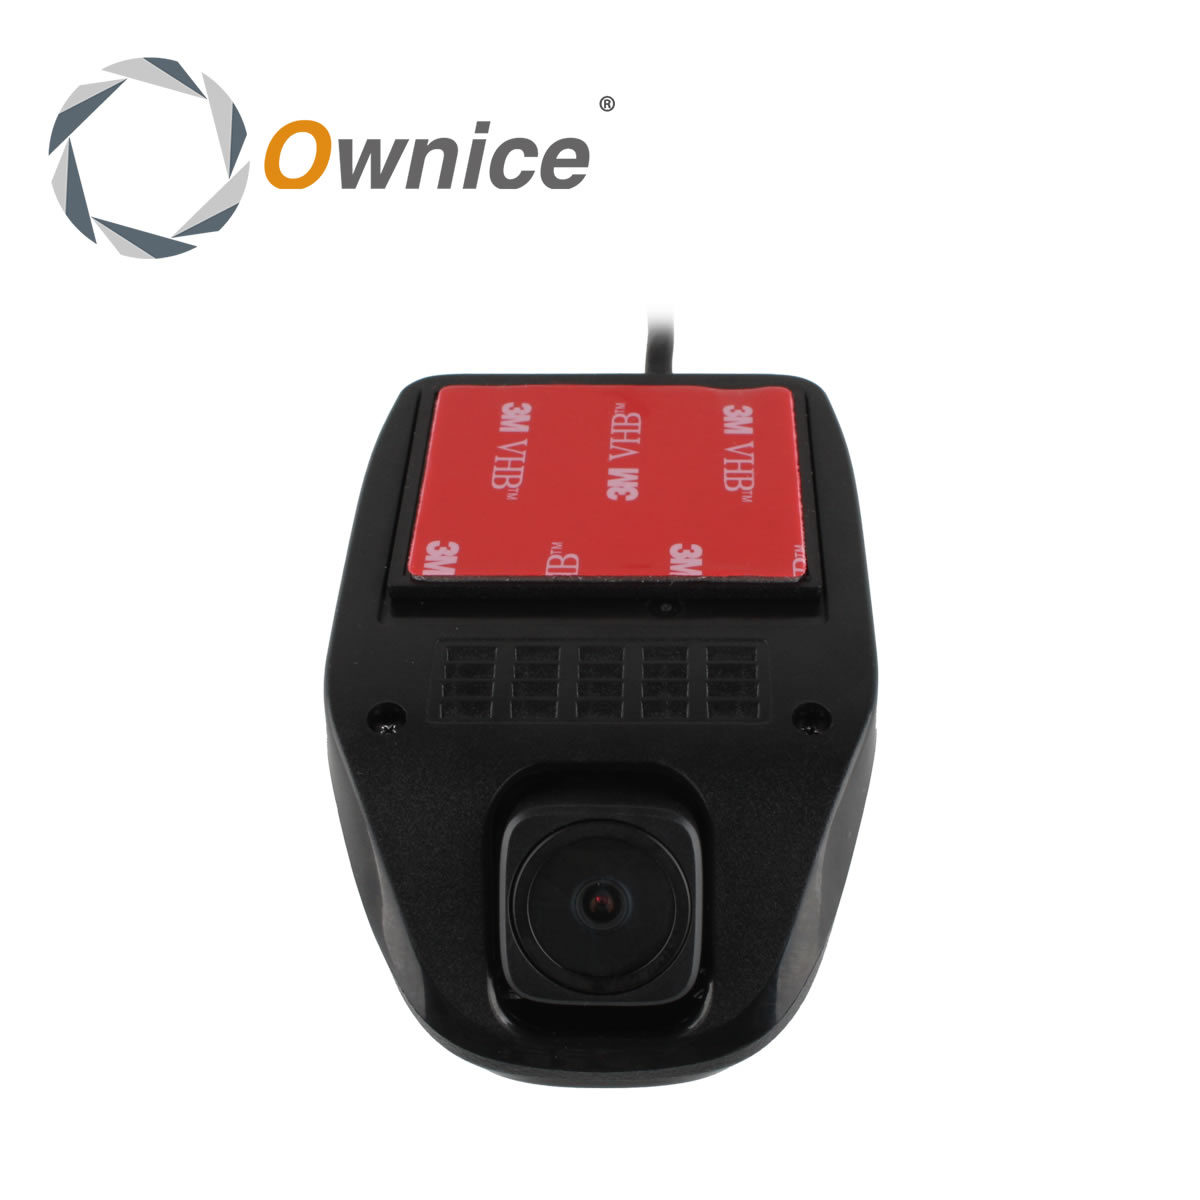 Special DVR without Battery For Ownice C500 Car DVD, and the DVD manufacture date must after 10th of April, 2017 (included 10th) special dvr without battery for ownice c500 car dvd and the dvd manufacture date must after 10th of april 2017 included 10th